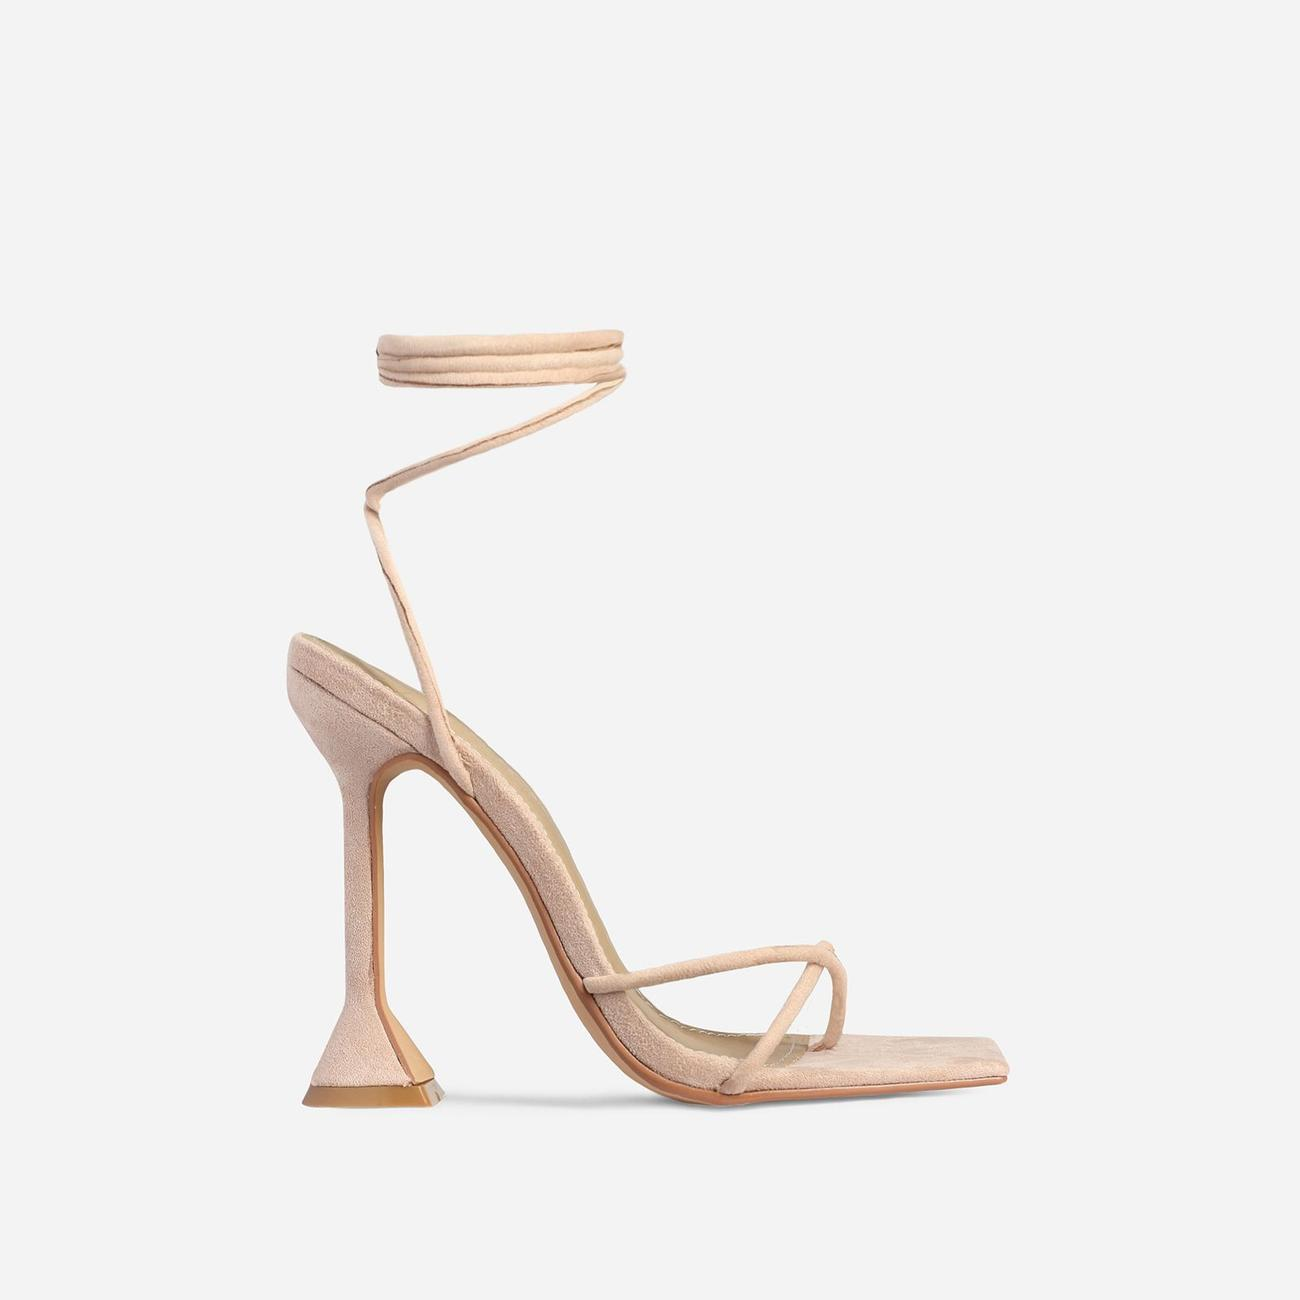 Emily Square Toe Lace Up Pyramid Heel In Nude Faux Suede Image 1